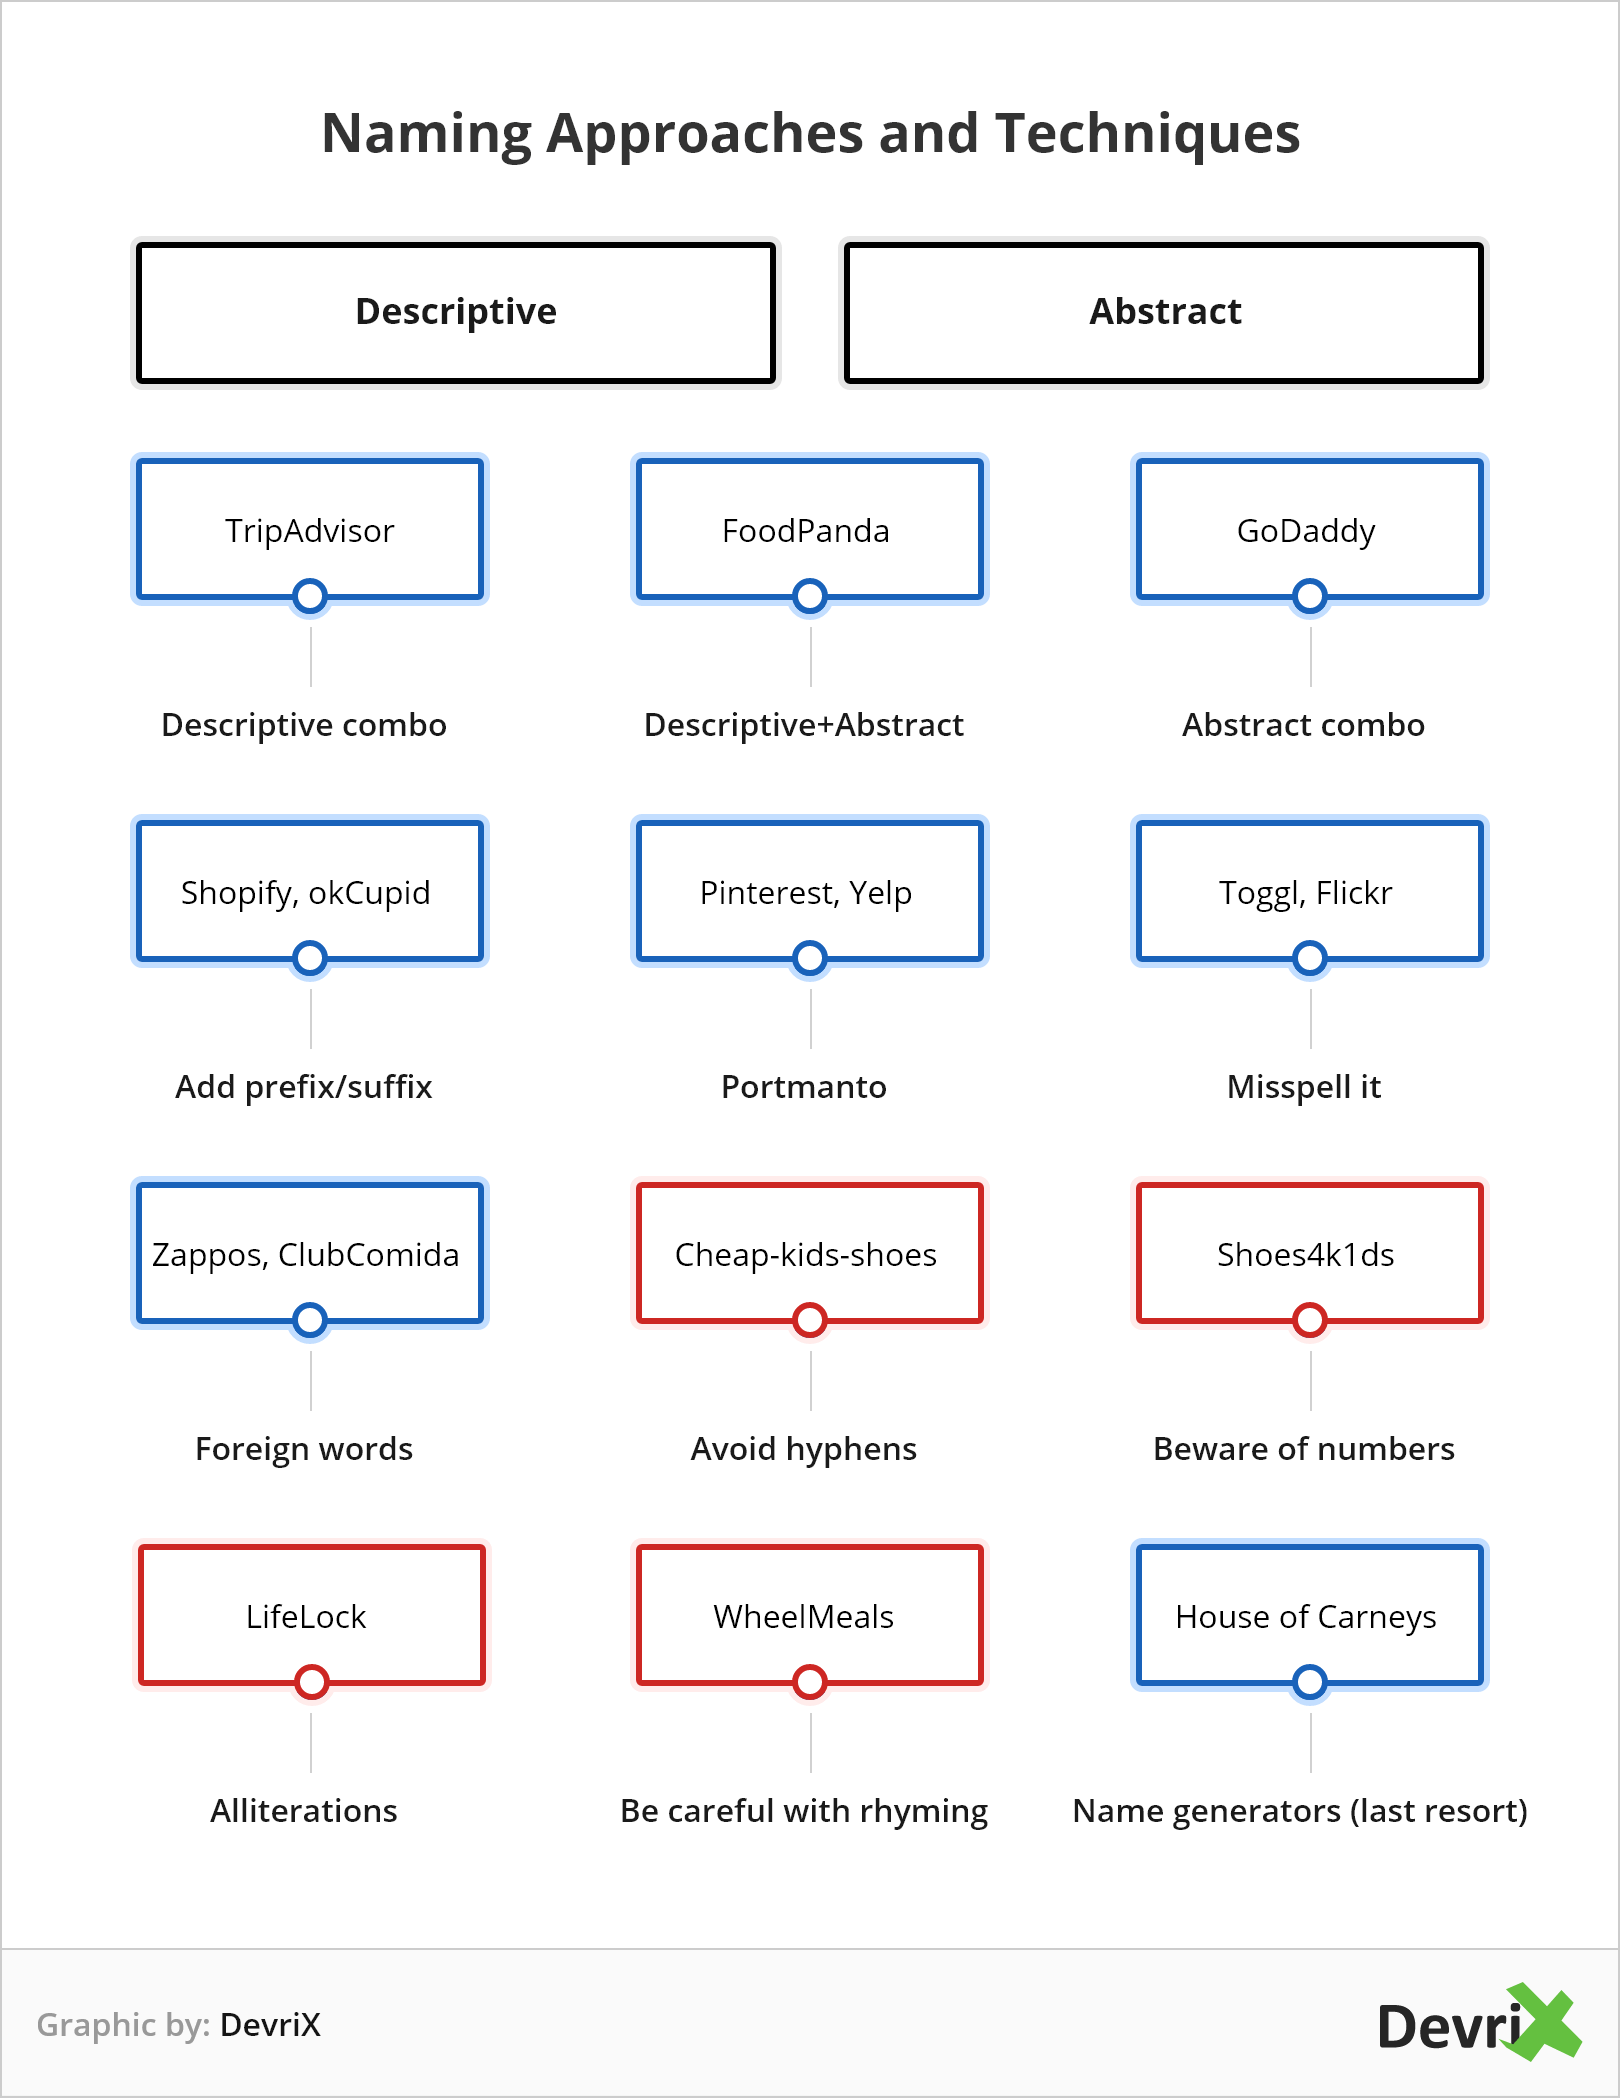 Naming approaches and techniques